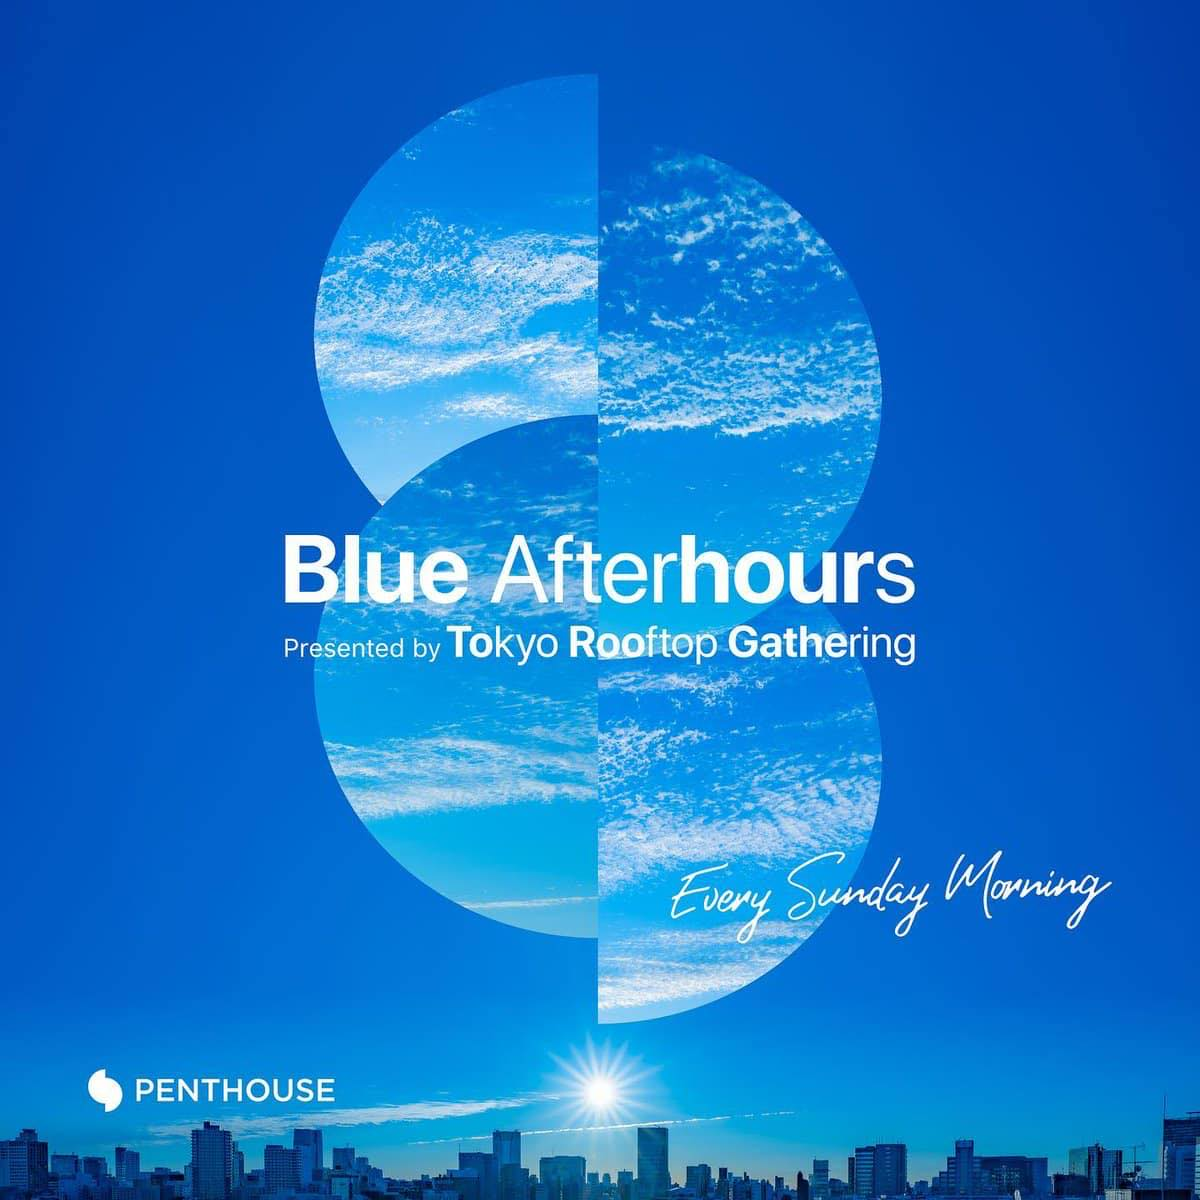 Blue Afterhours Presented by Tokyo Rooftop Gathering